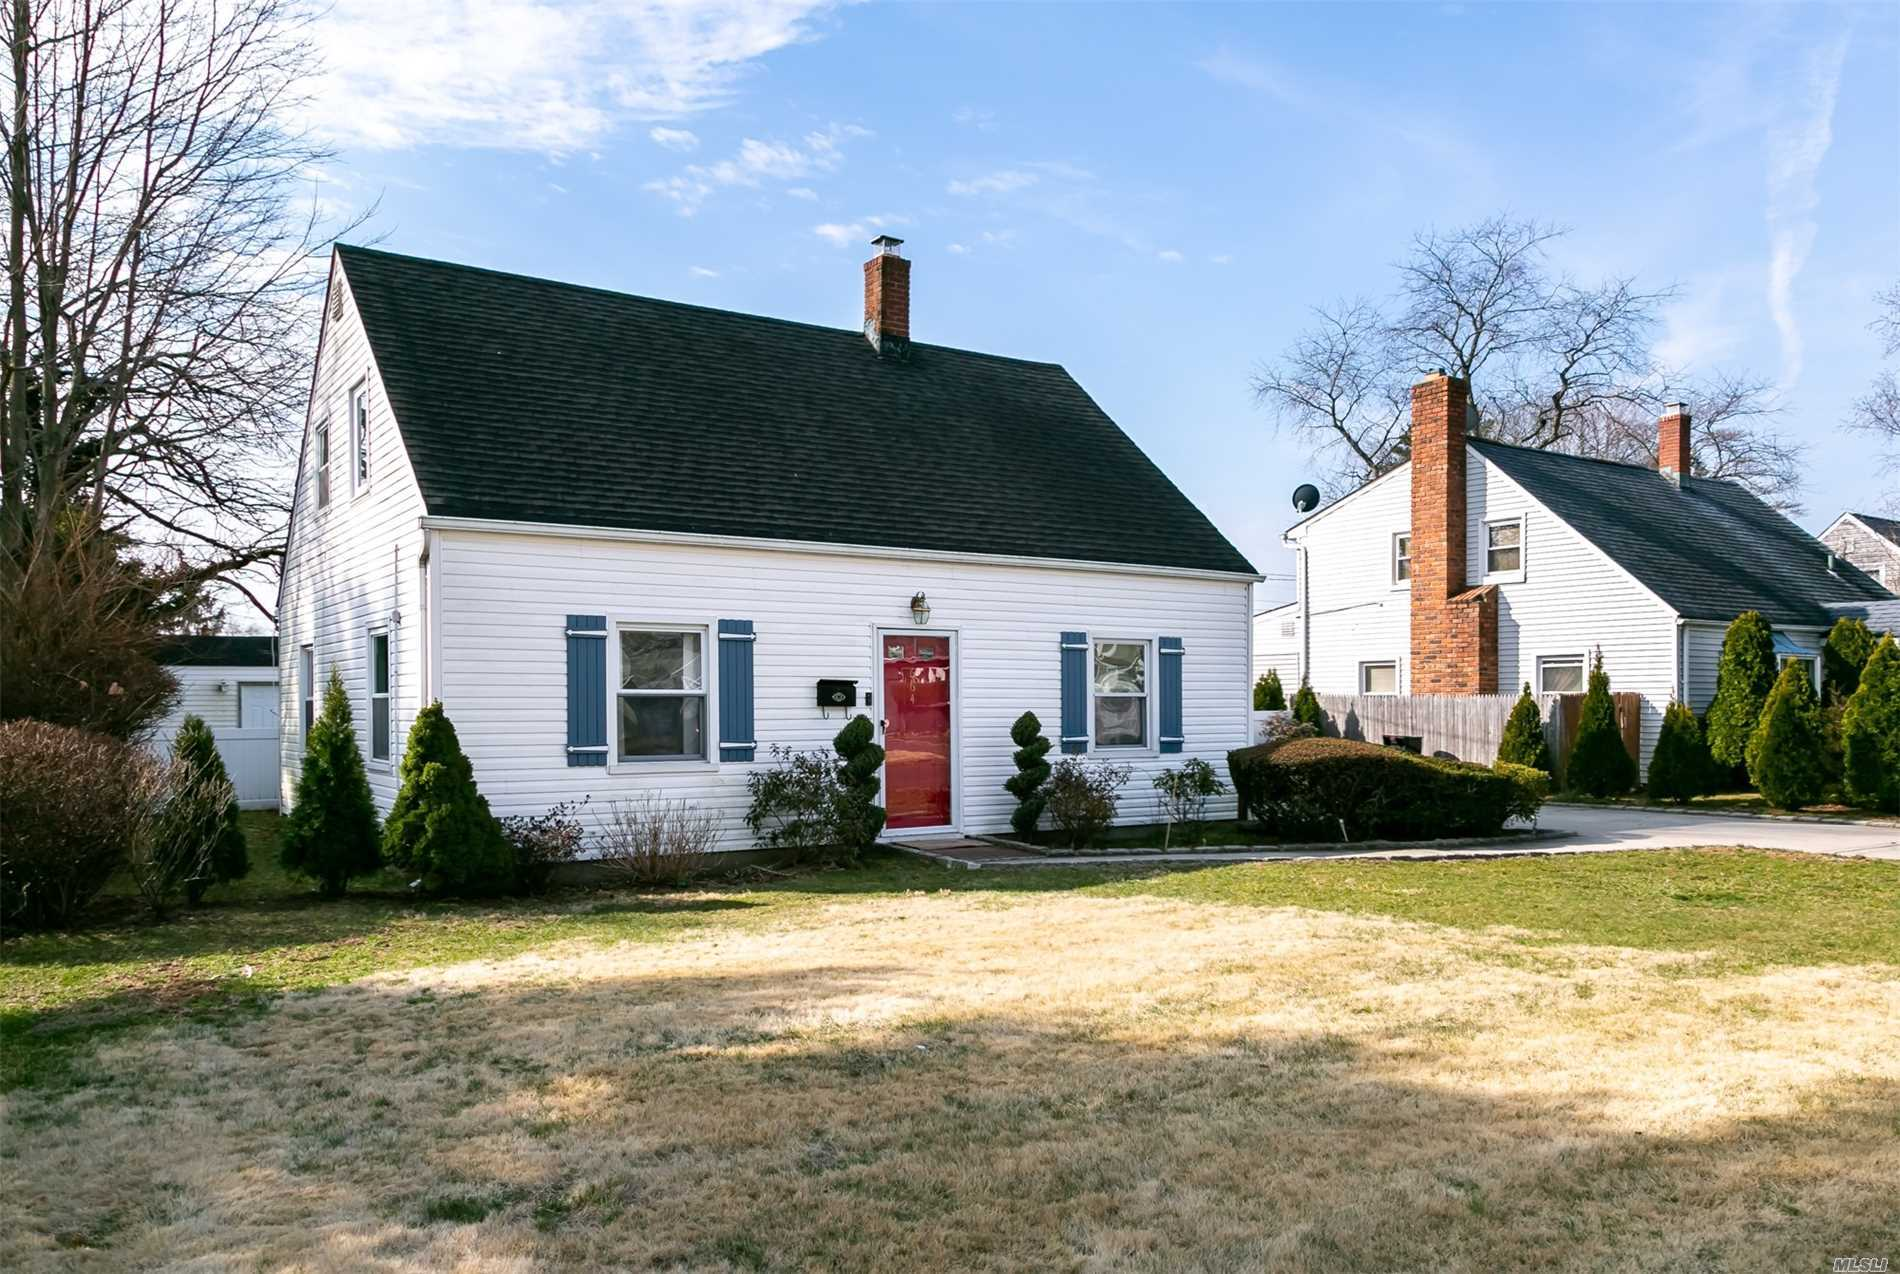 Expanded Cape Located on a Quiet Dead End Block with a Rear Extension. This house offers either a Formal Dining Room, or a Large 5th Bedroom. Updated Kitchen and Baths. Plenty of Possibilities. Low Taxes with STAR $7183